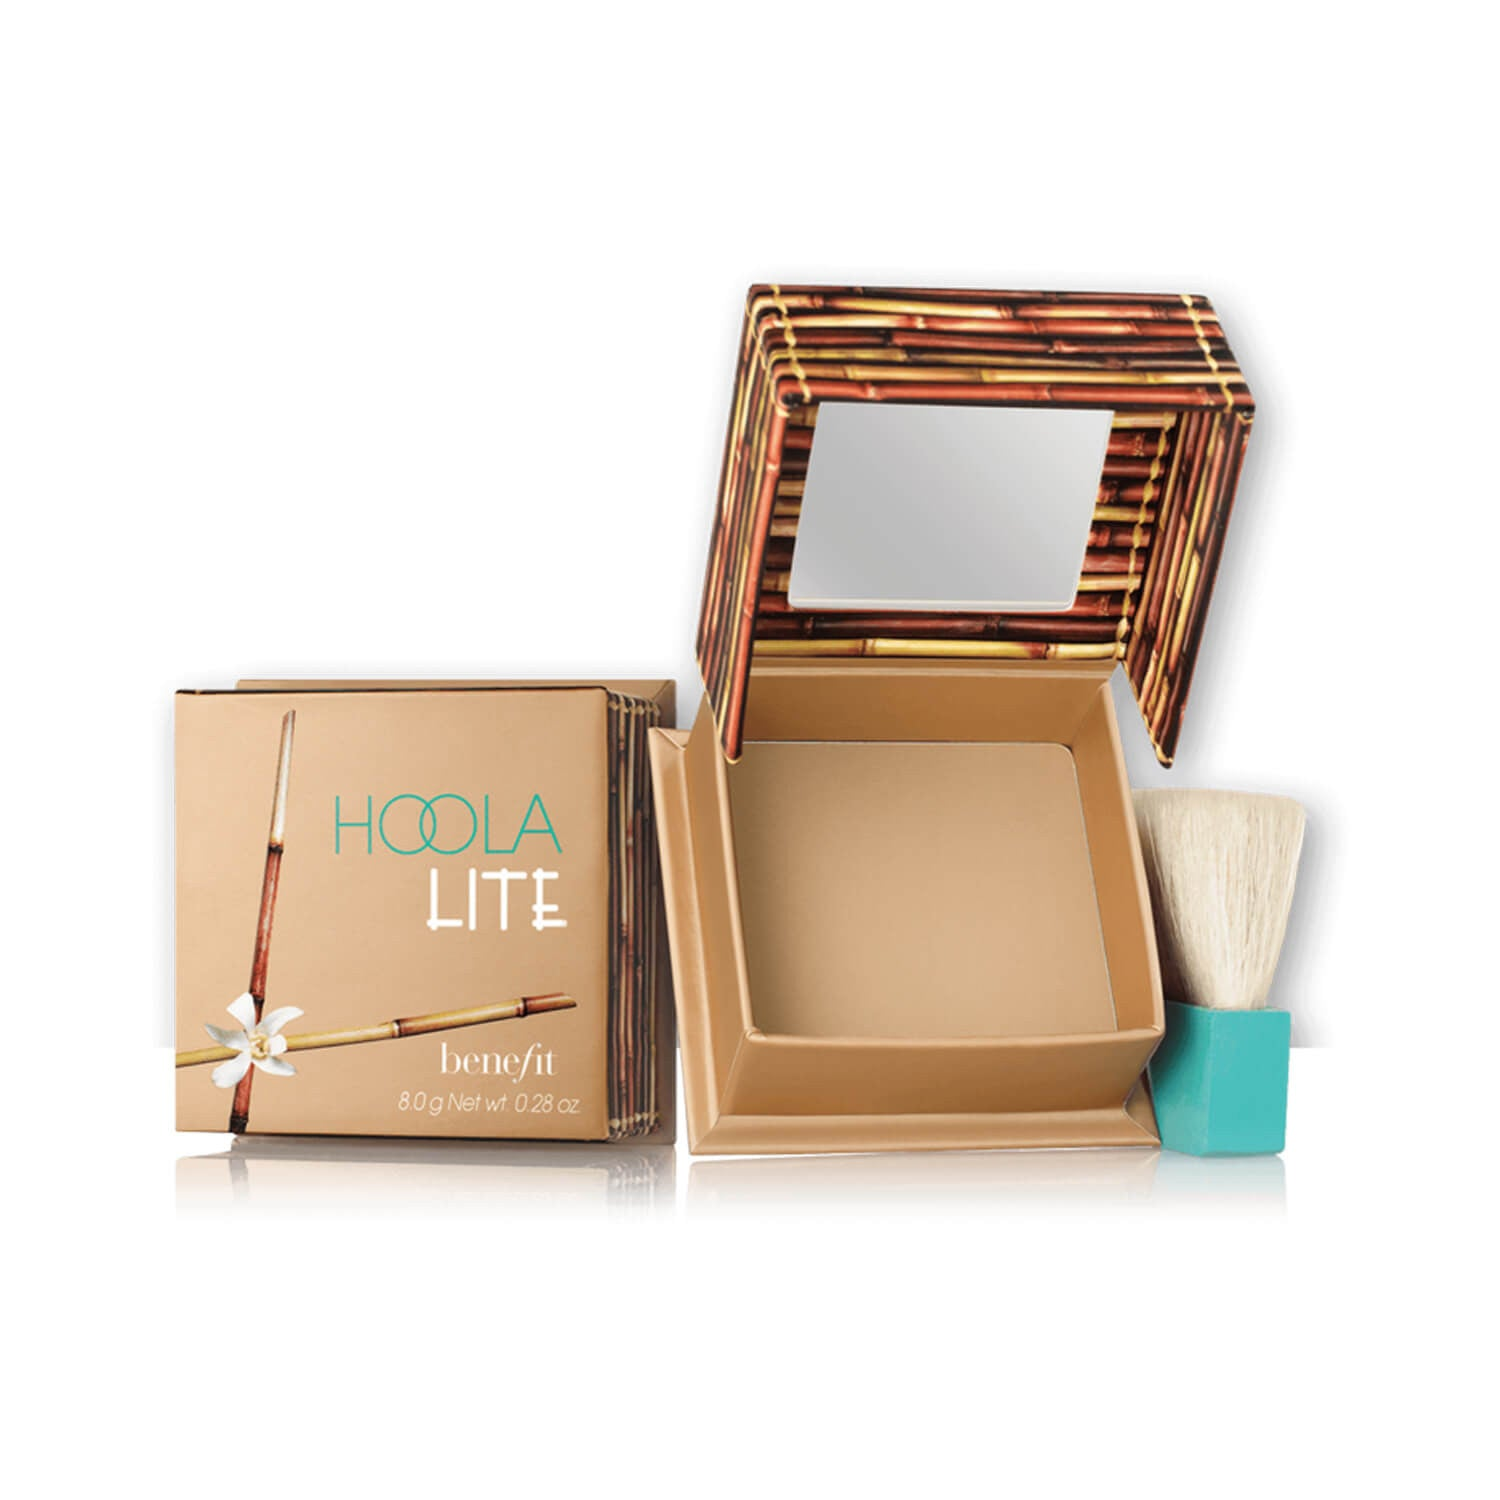 Benefit Cosmetics Hoola Lite Light Powder Bronzer For Face